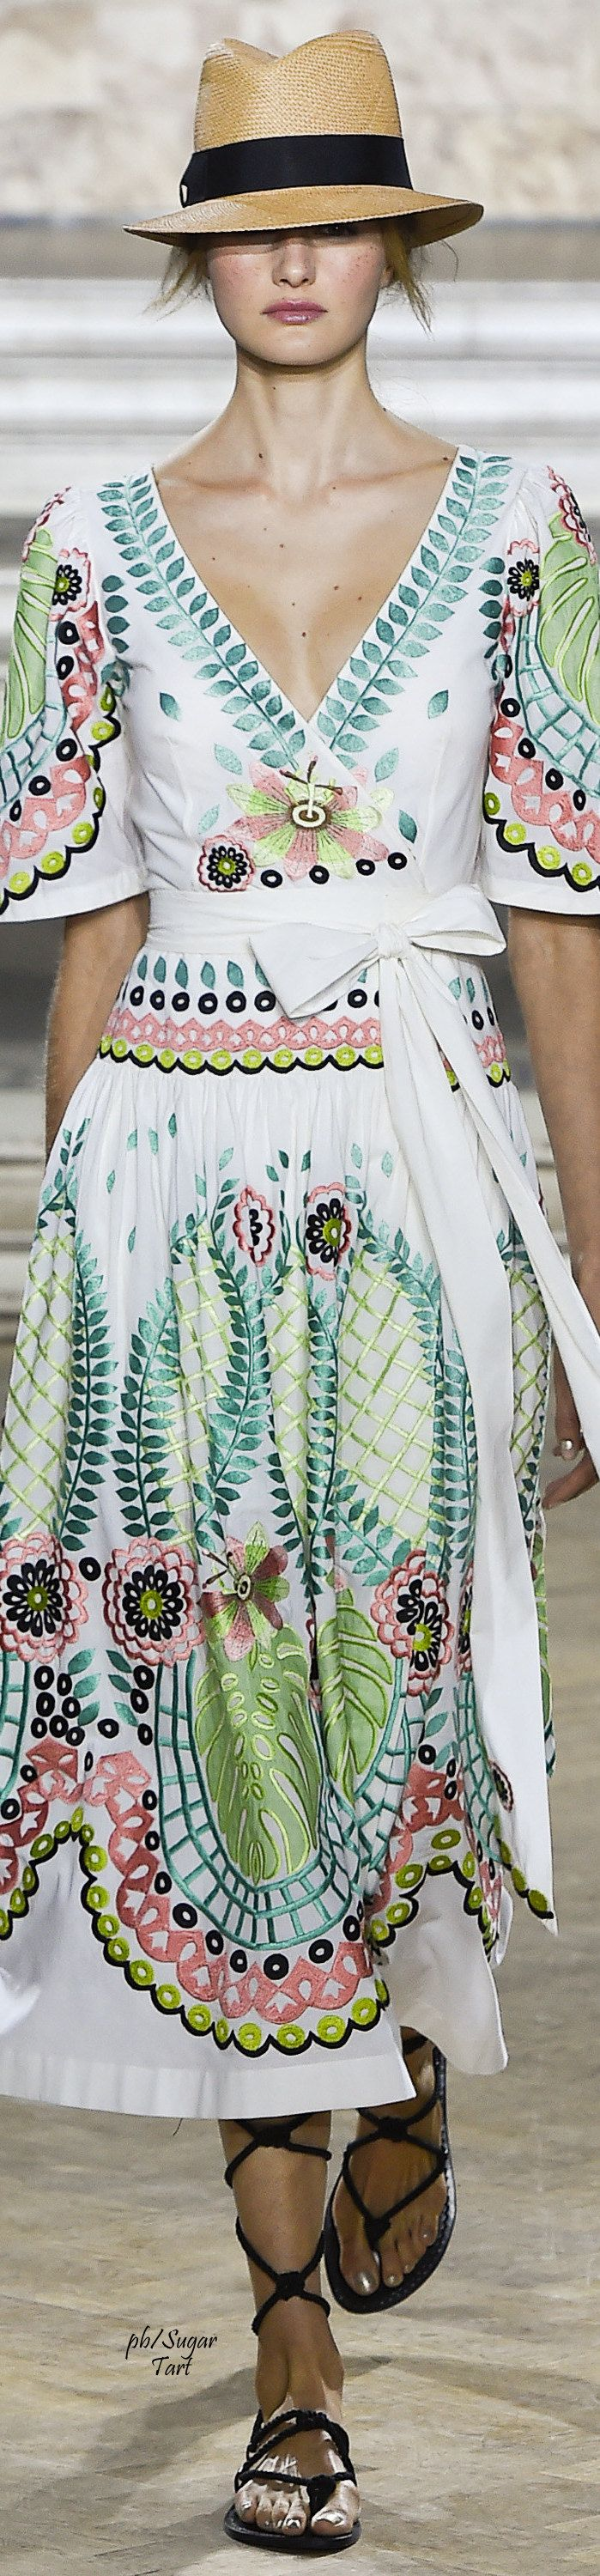 Temperley London Spring 2016 RTW